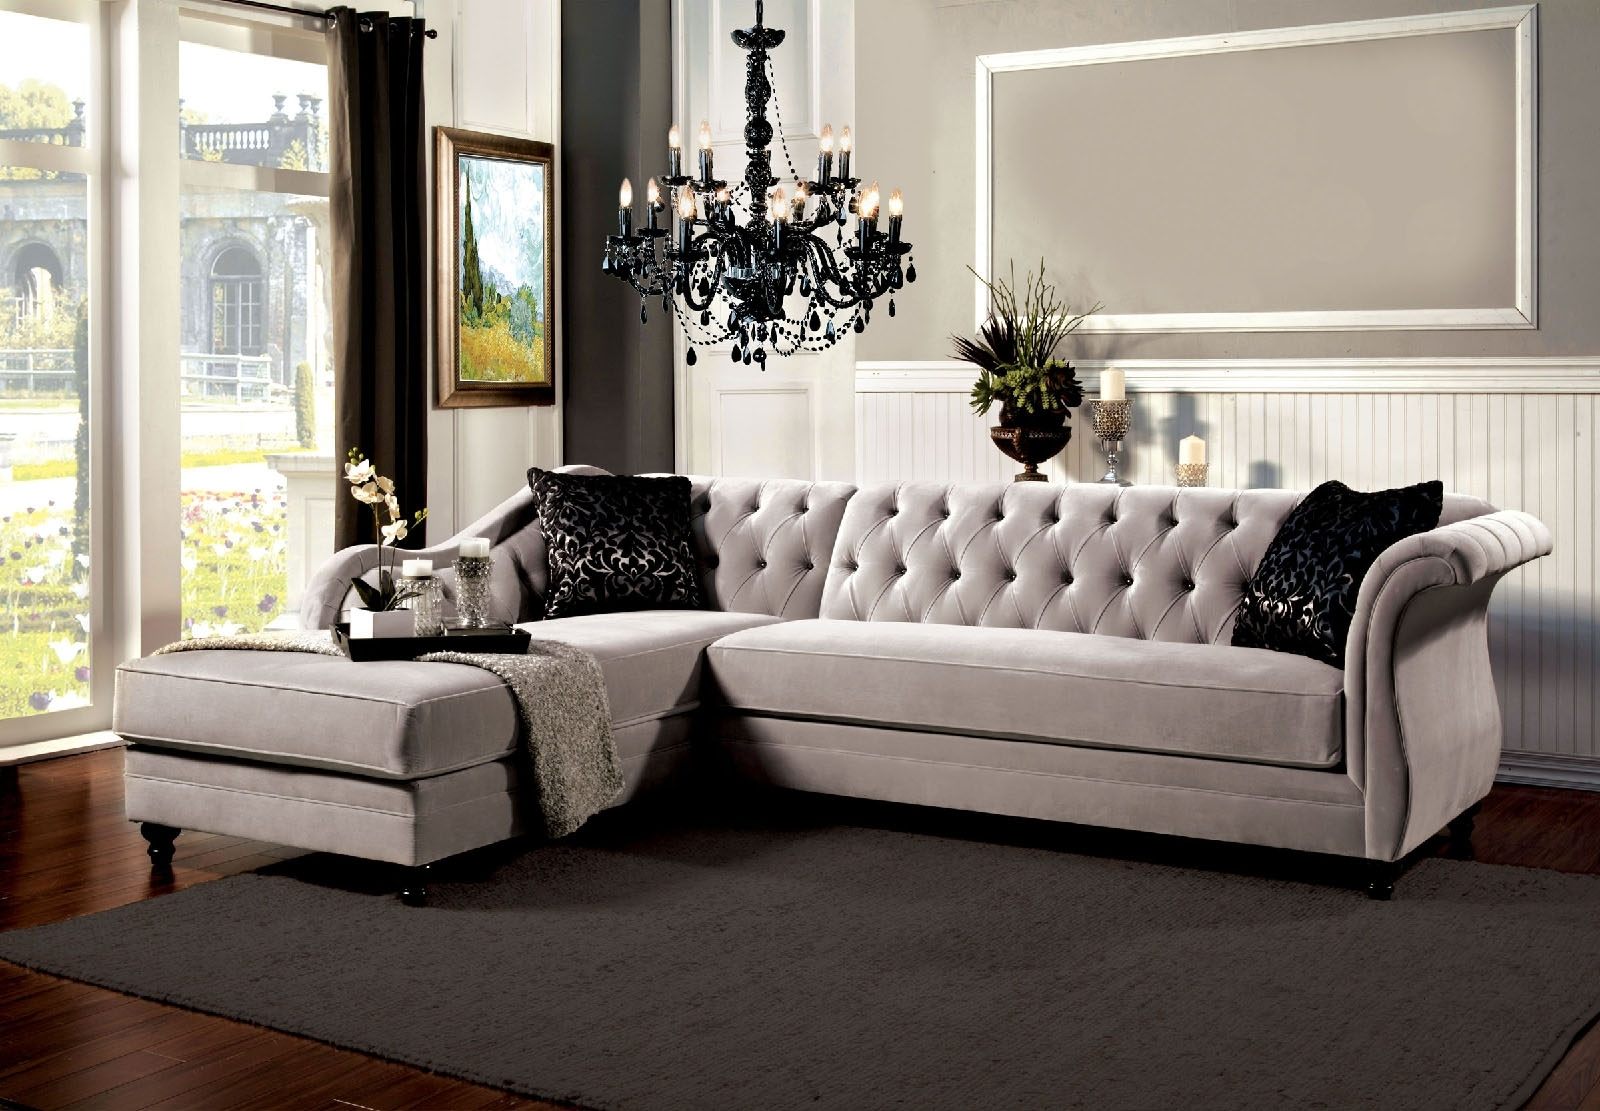 Tufted Sectional Sofas For Current Grey Vintage Tufted Sectional Sofa (View 4 of 15)